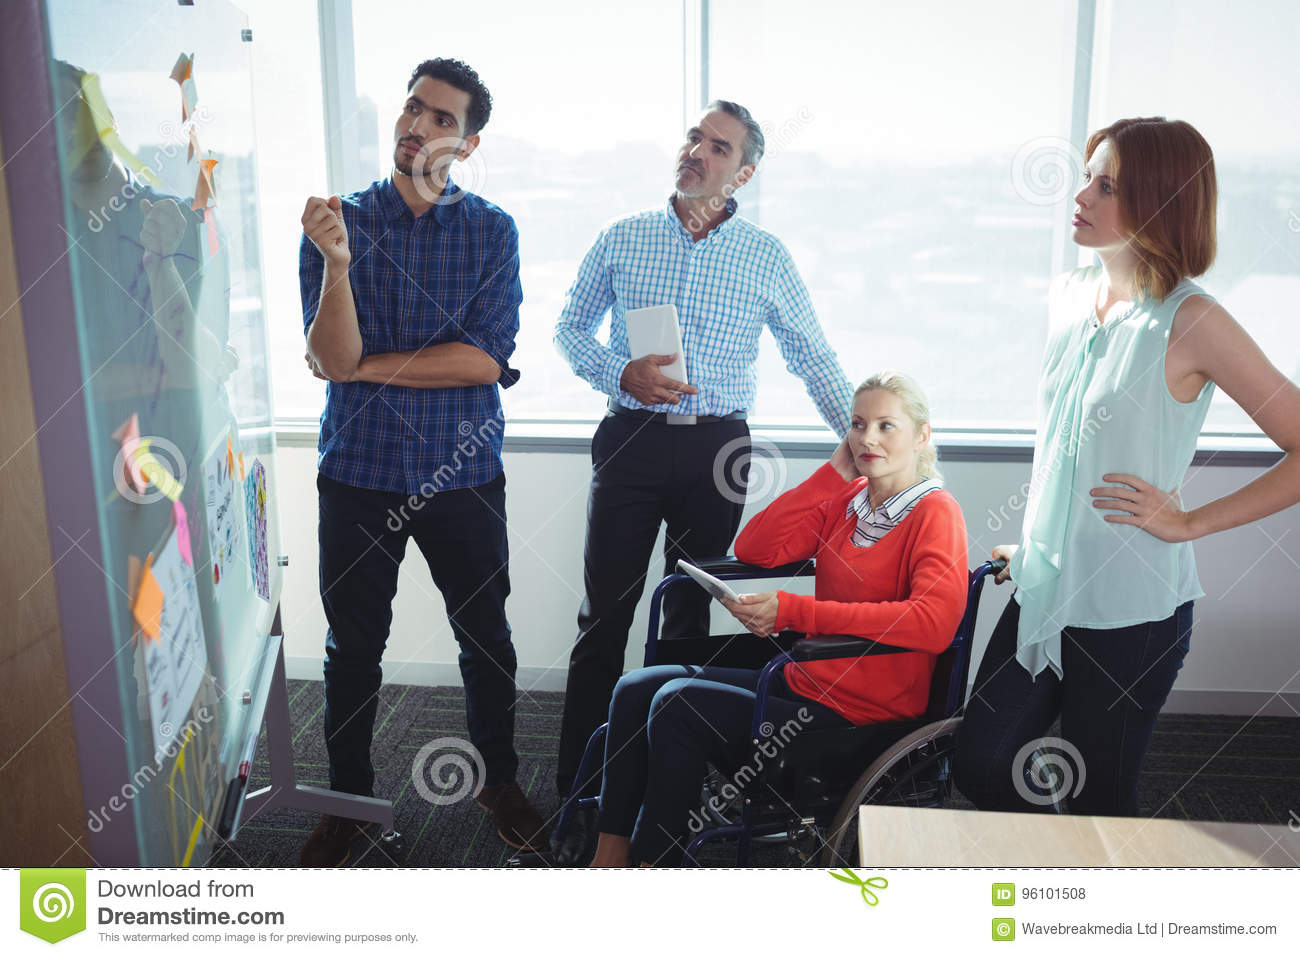 Thoughtful business entrepreneurs looking at whiteboard